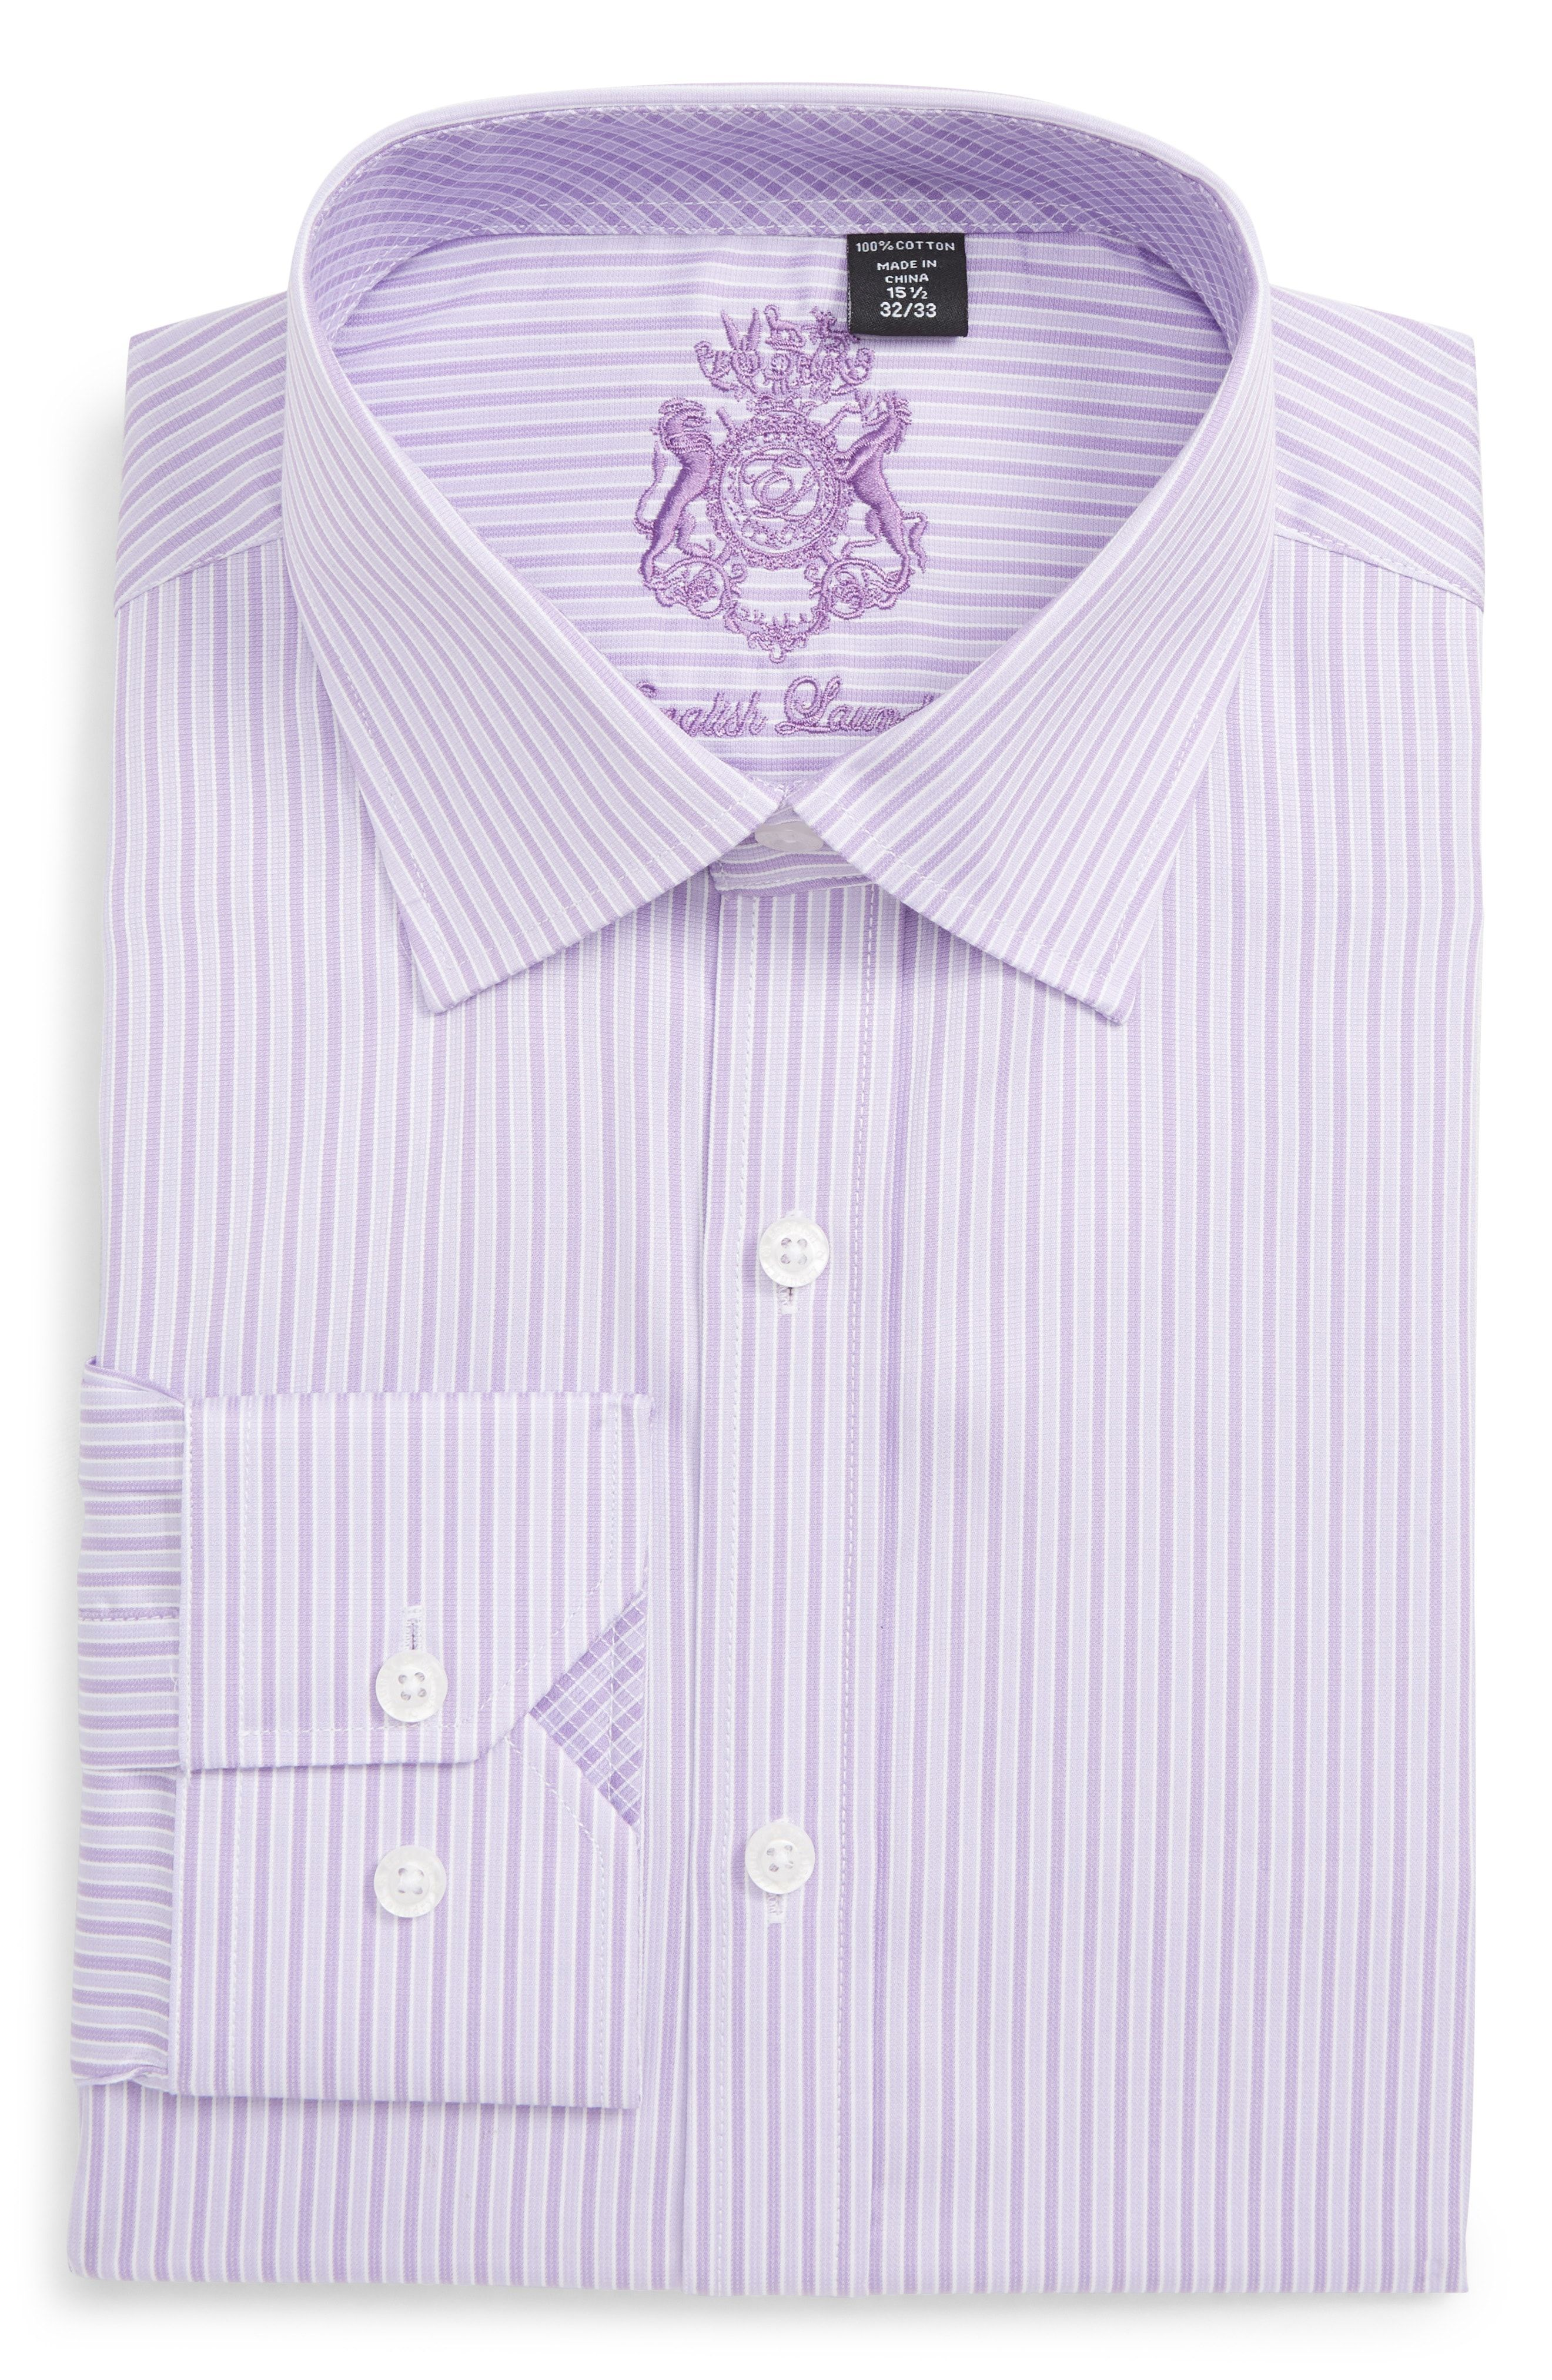 Trim Fit Stripe Dress Shirt In Purple Shirt Dress Shirts